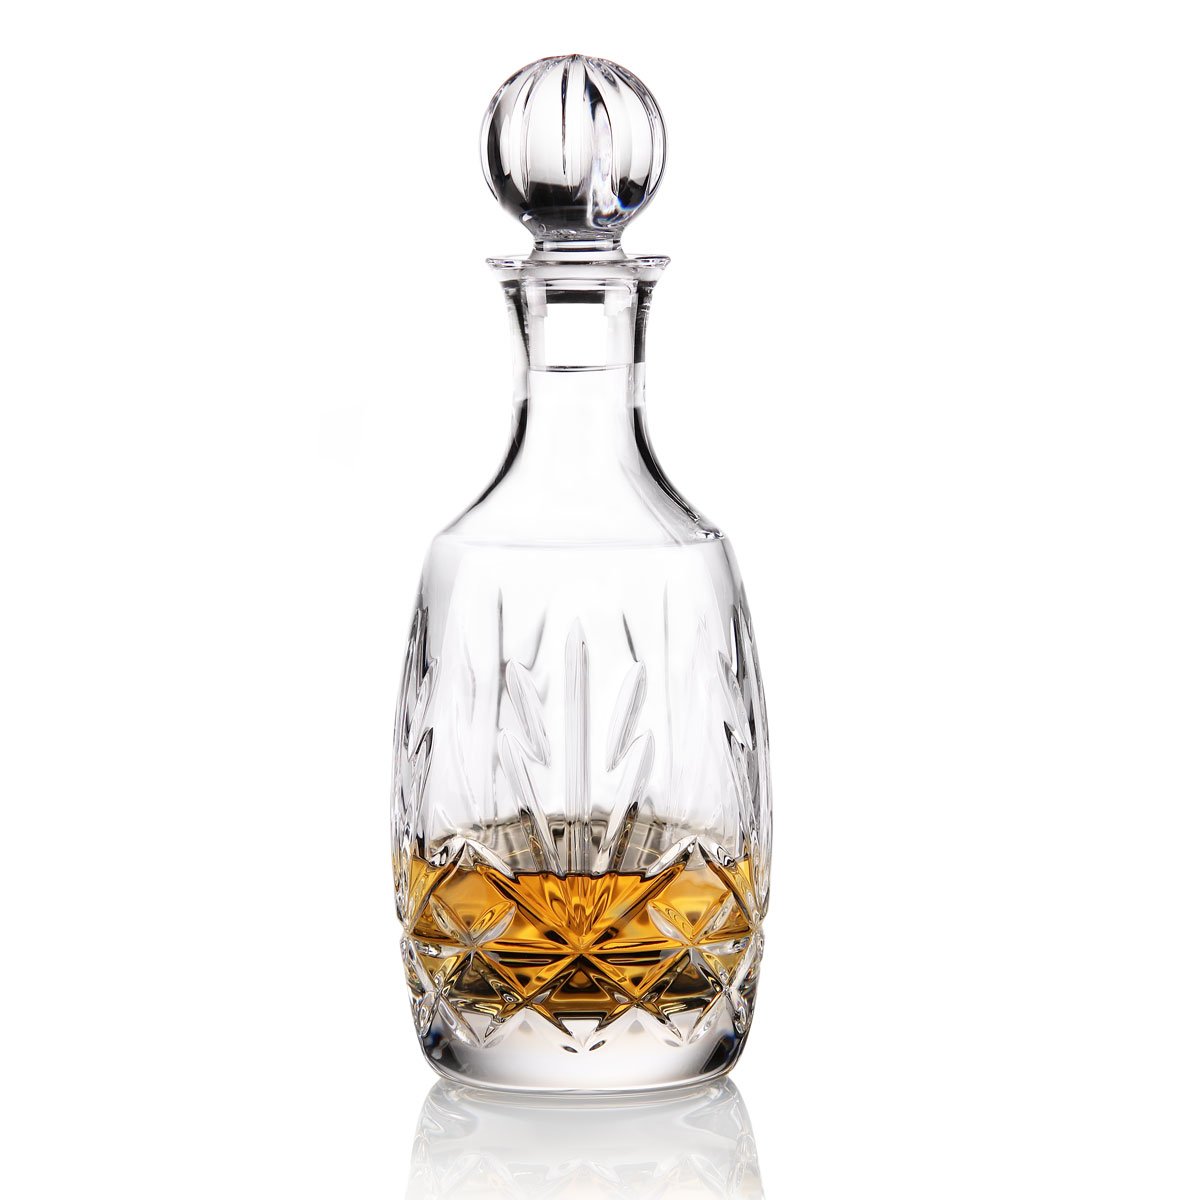 Cashs Ireland Annestown Rounded Decanter